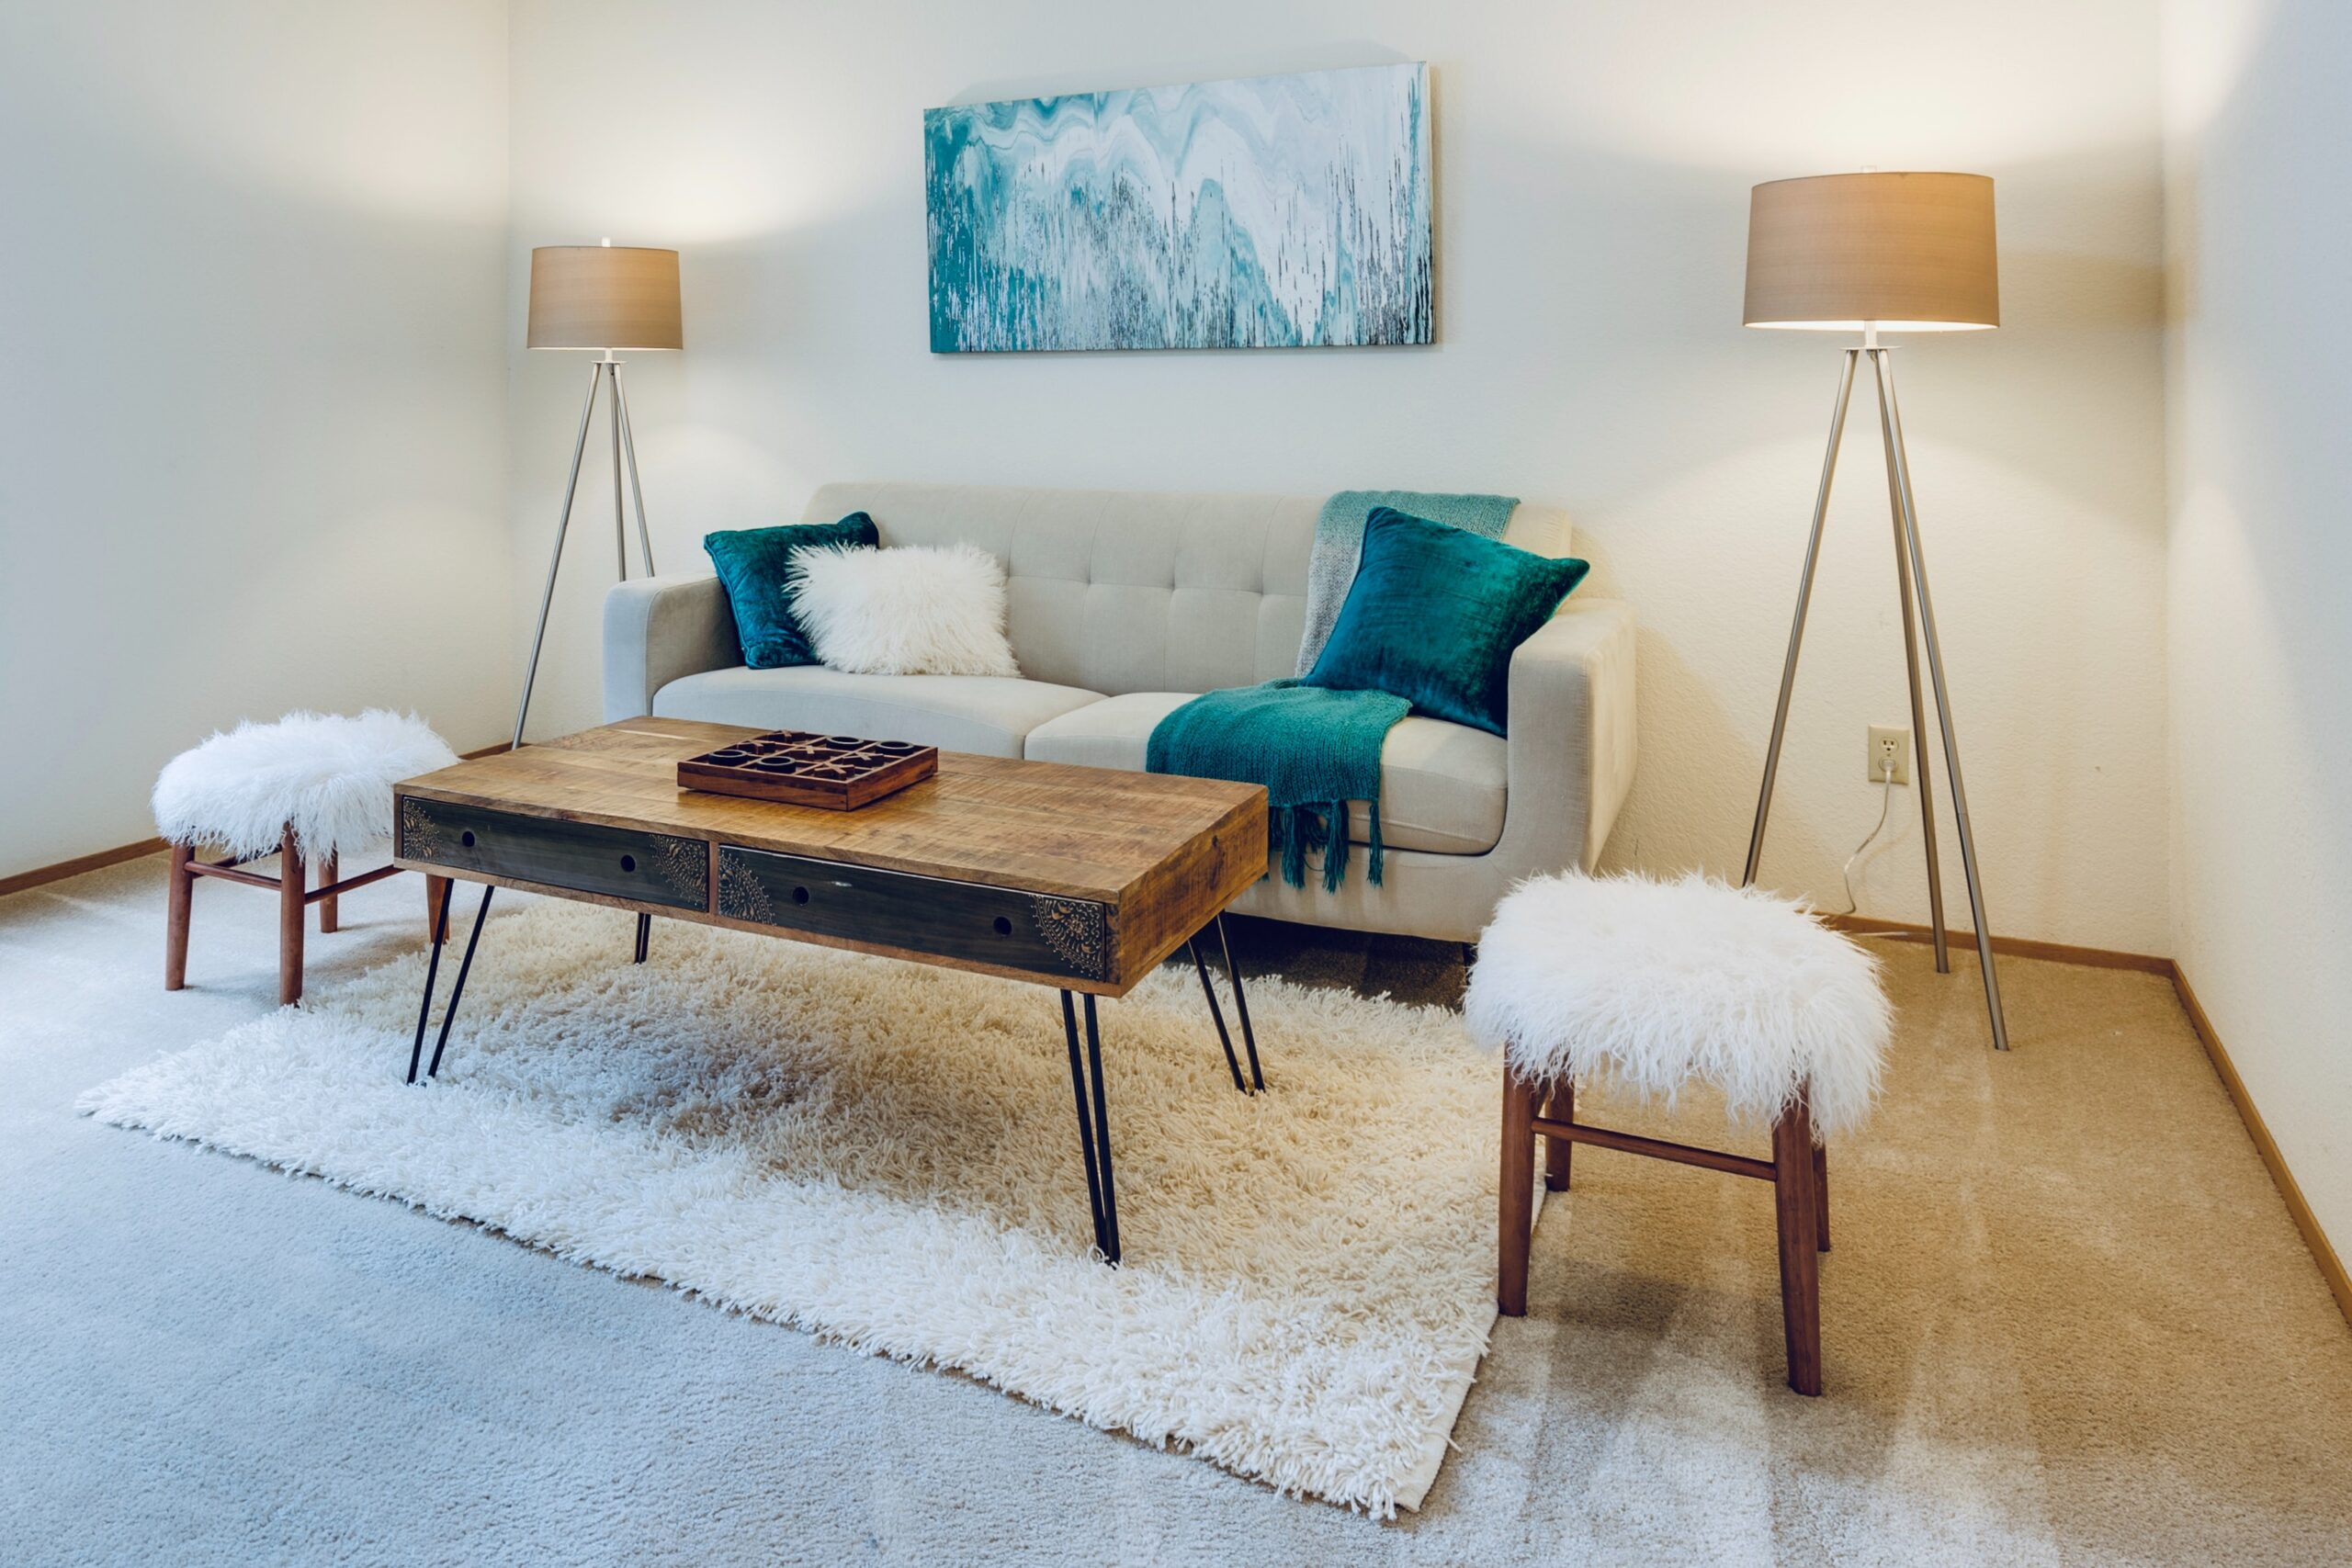 Do You Know Which Color Is The Best For A Living Room? 8 Color Ideas From Experts